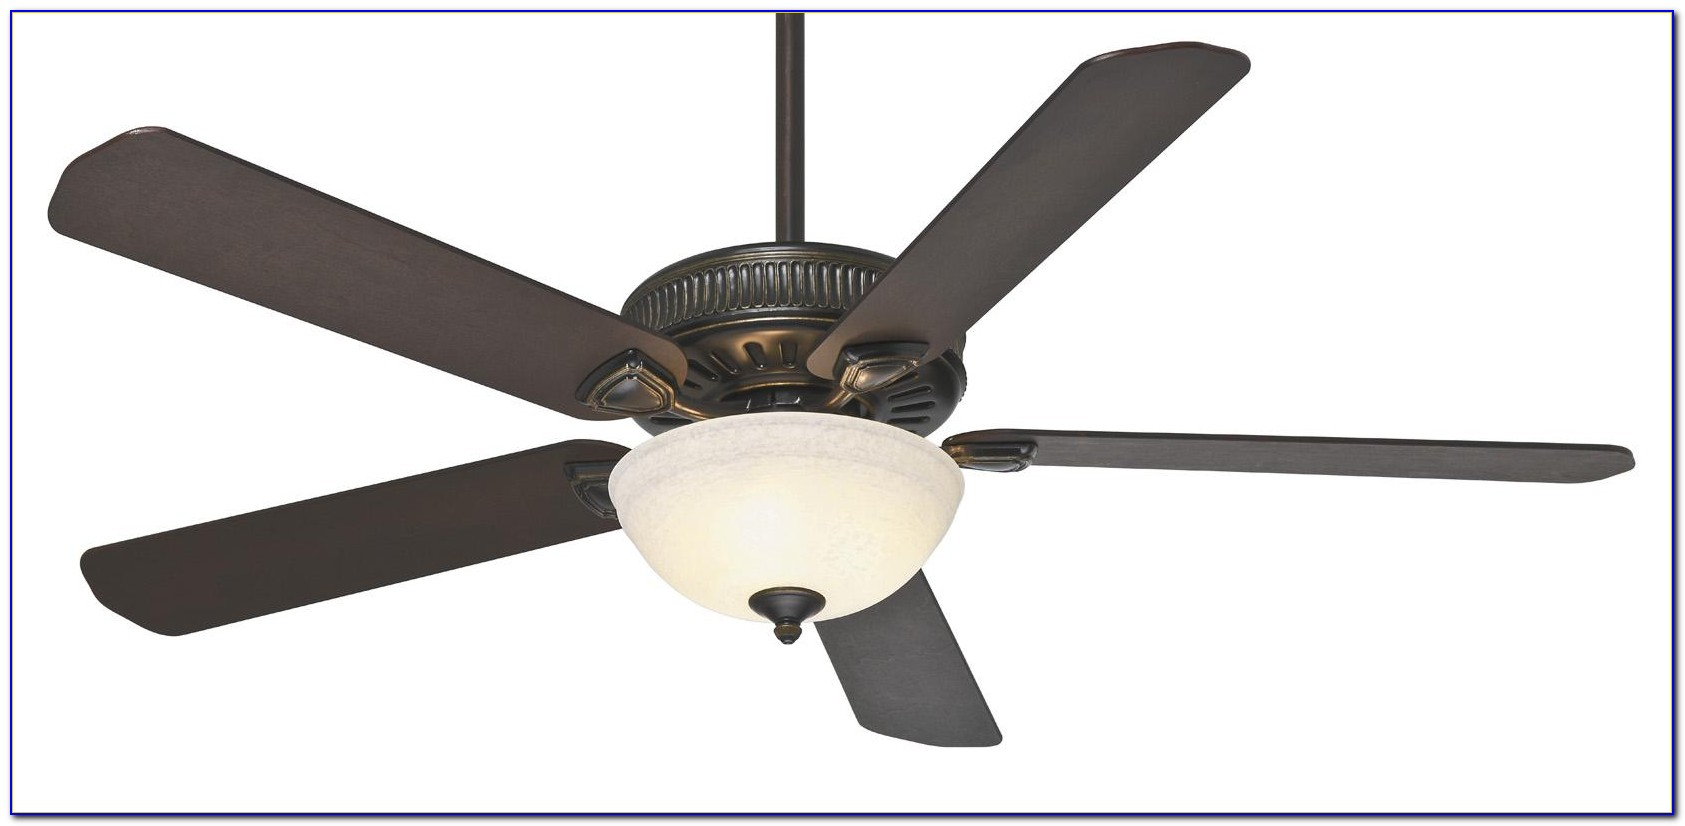 Casablanca Outdoor Ceiling Fans With Remote Control